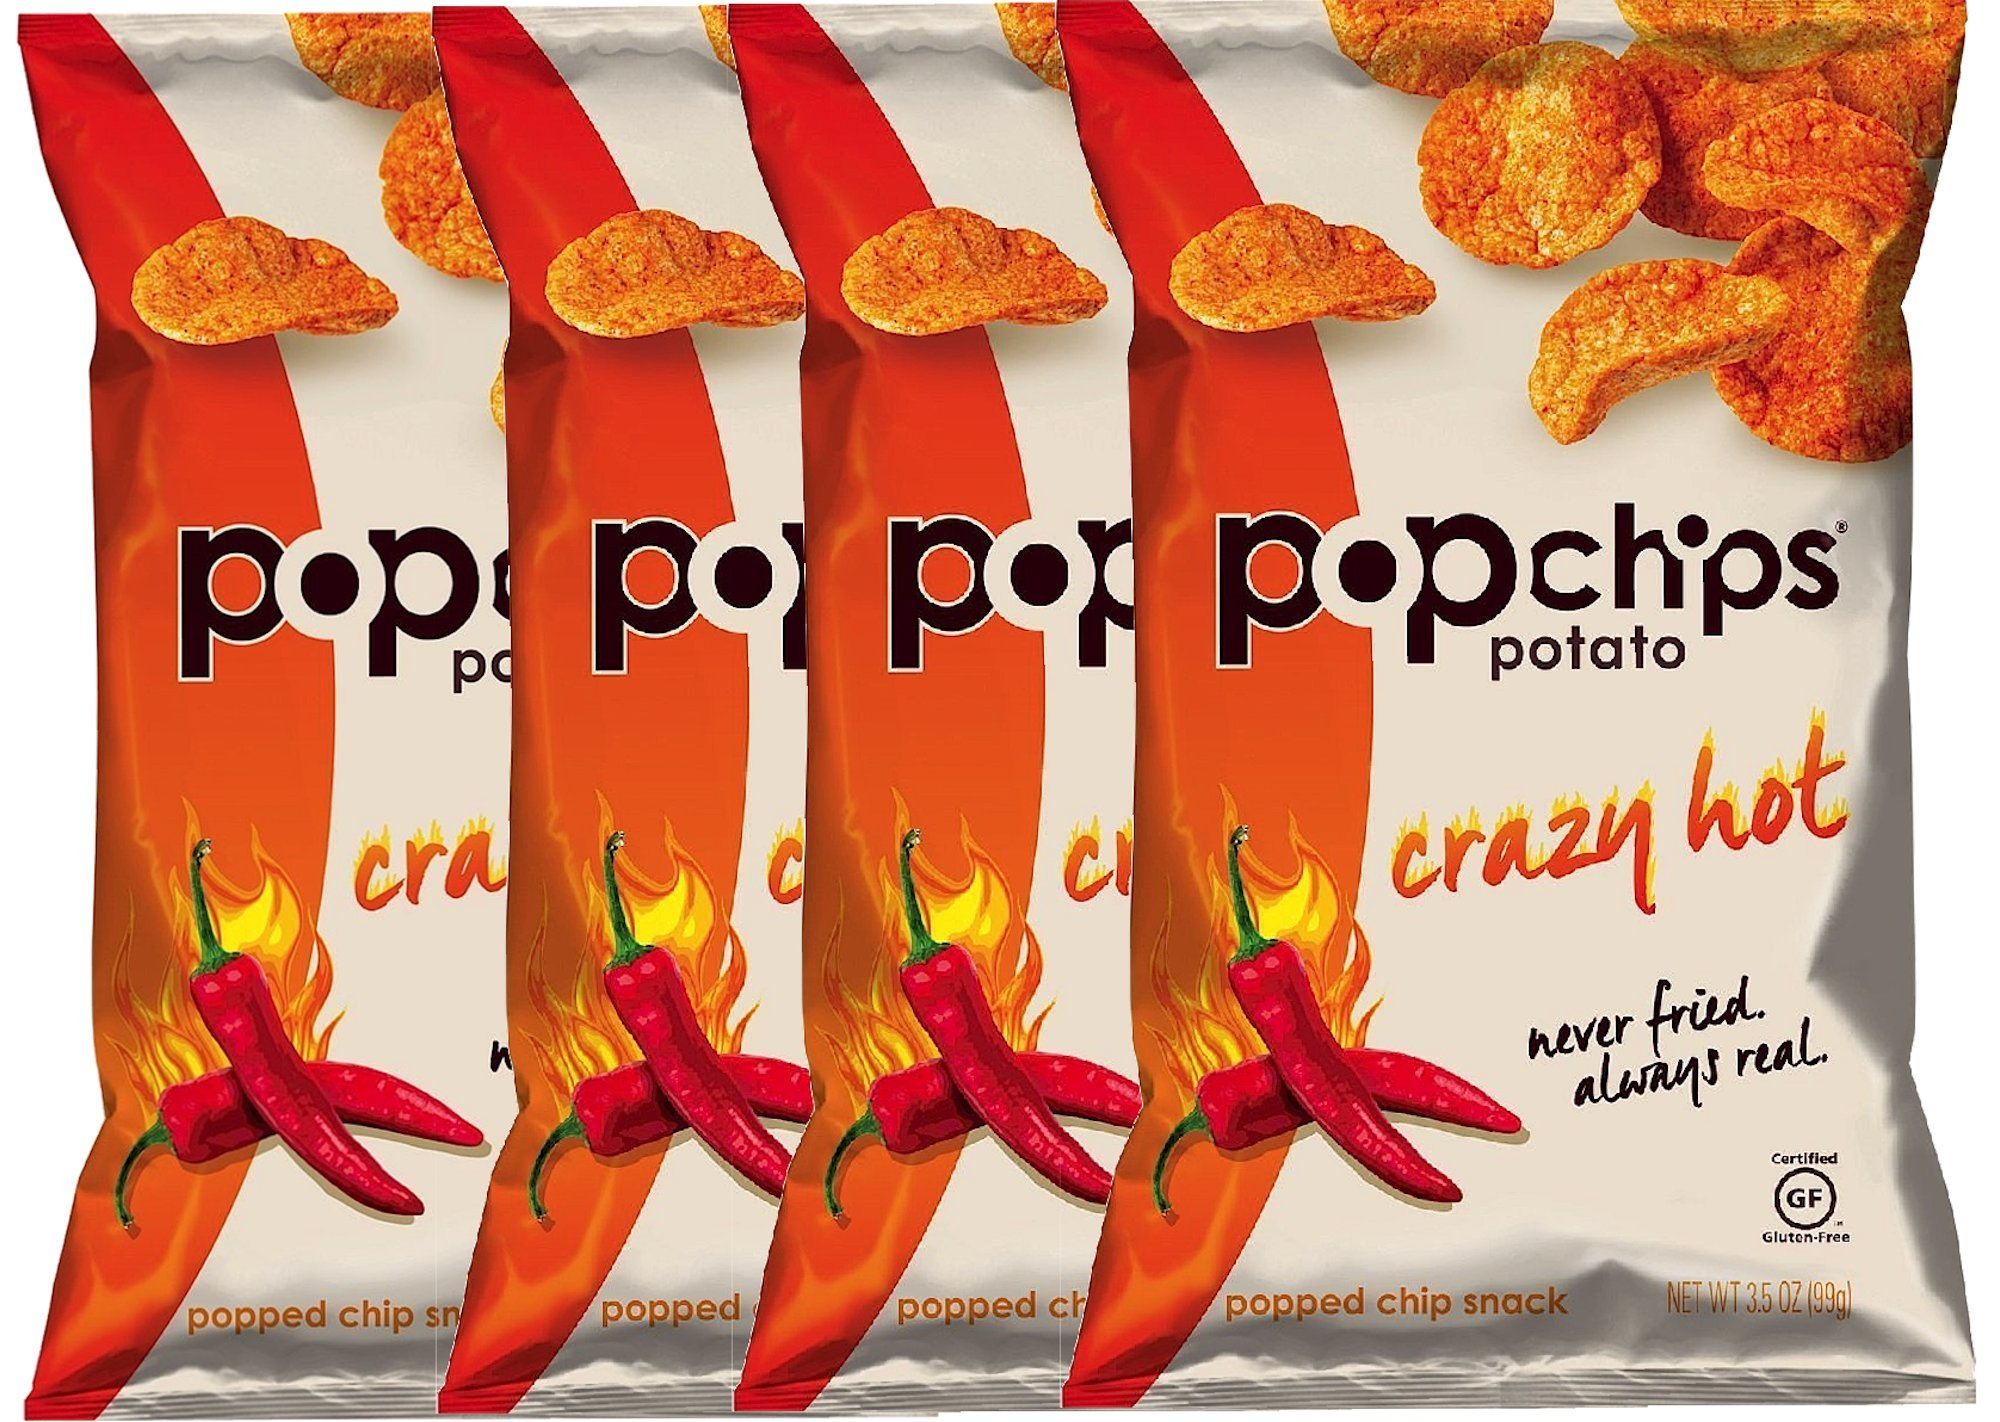 Popchips Crazy Hot Gluten Free Potato Chips, 3.5 oz (4)